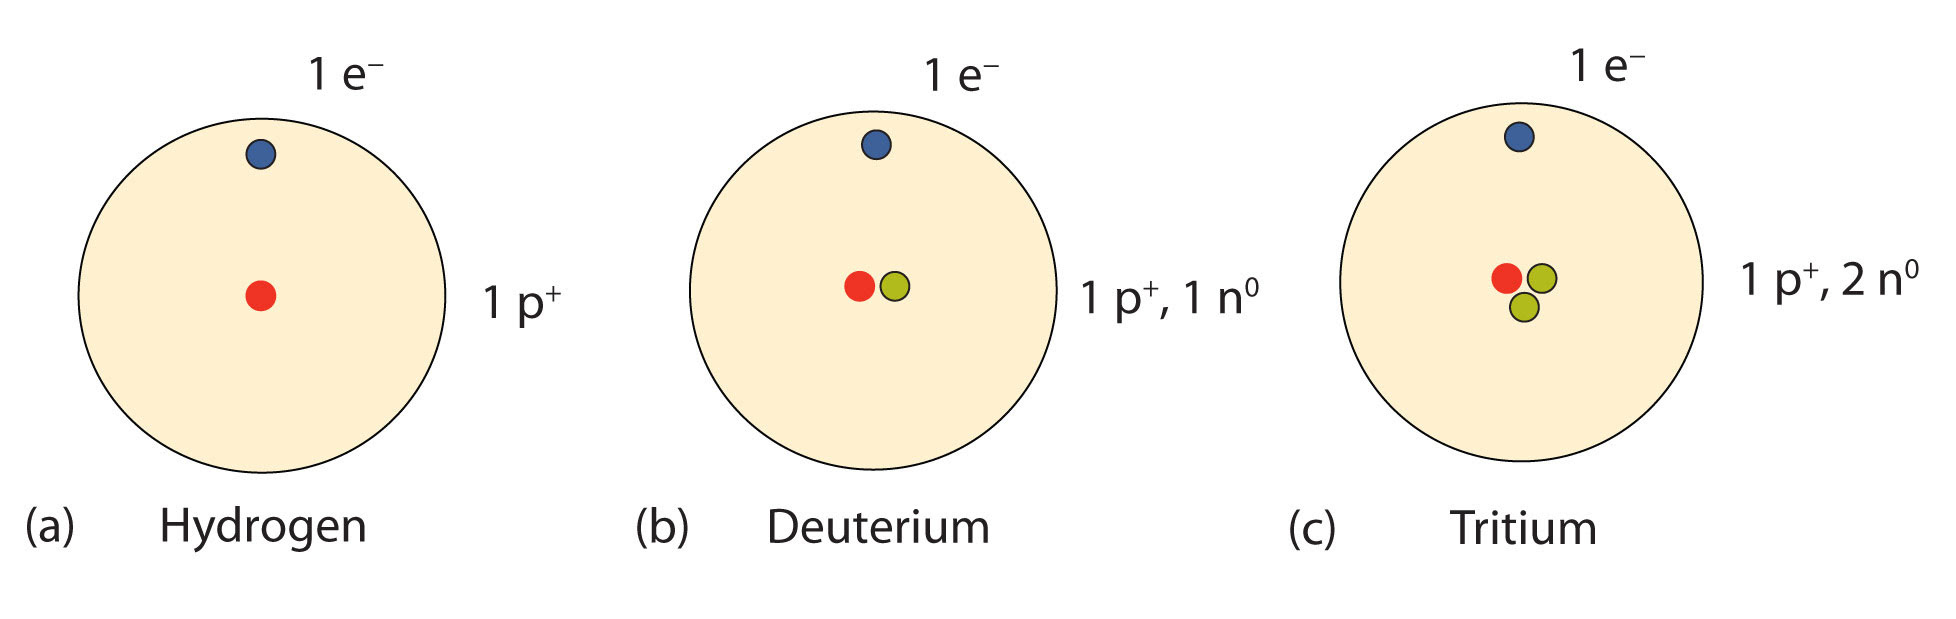 Periodic Table Protons Neutrons Electrons